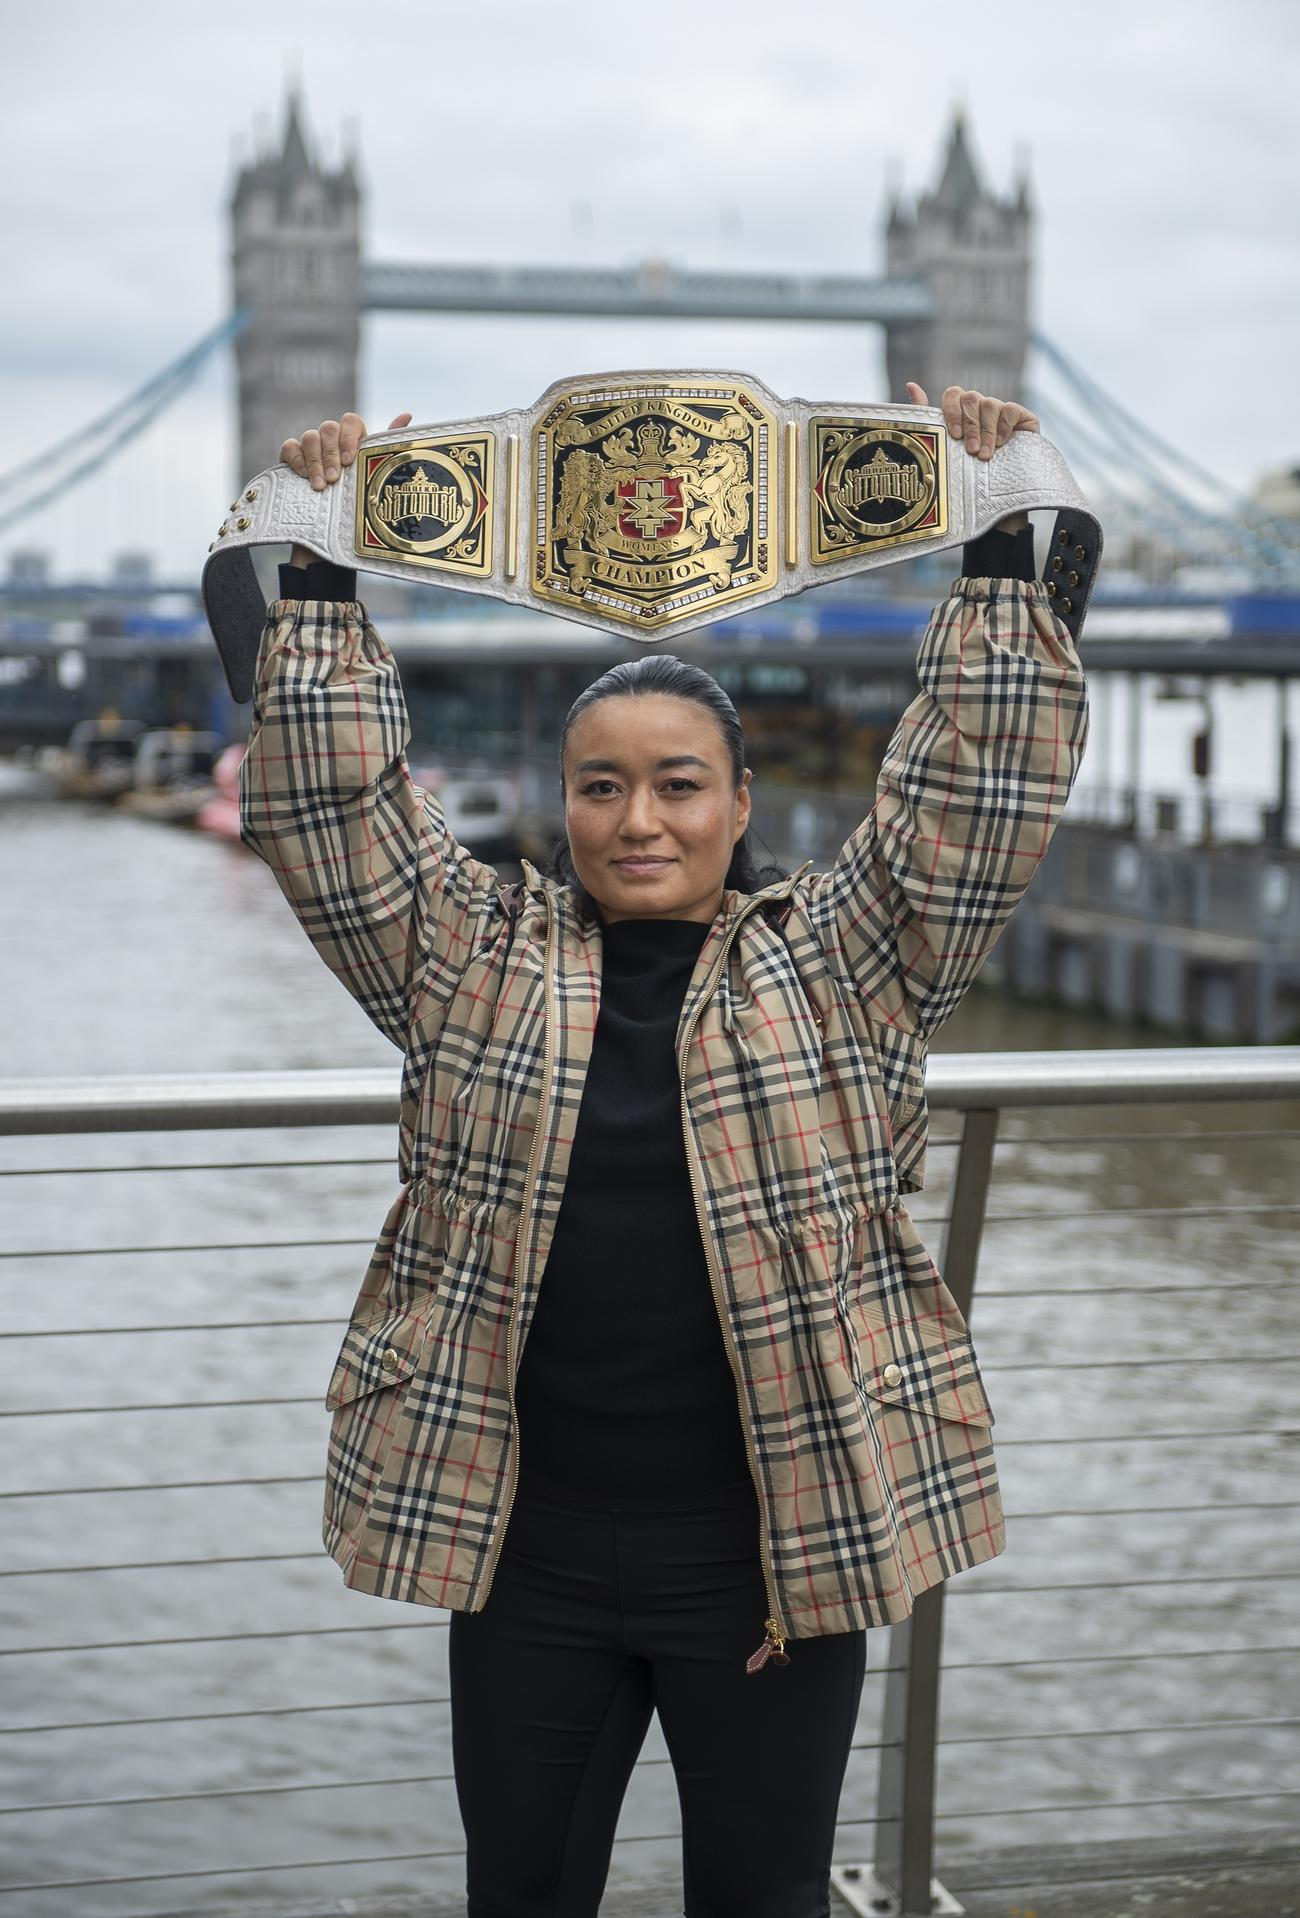 NXT UK女子王座を獲得した里村明衣子(C)2021 WWE, Inc. All Rights Reserved.